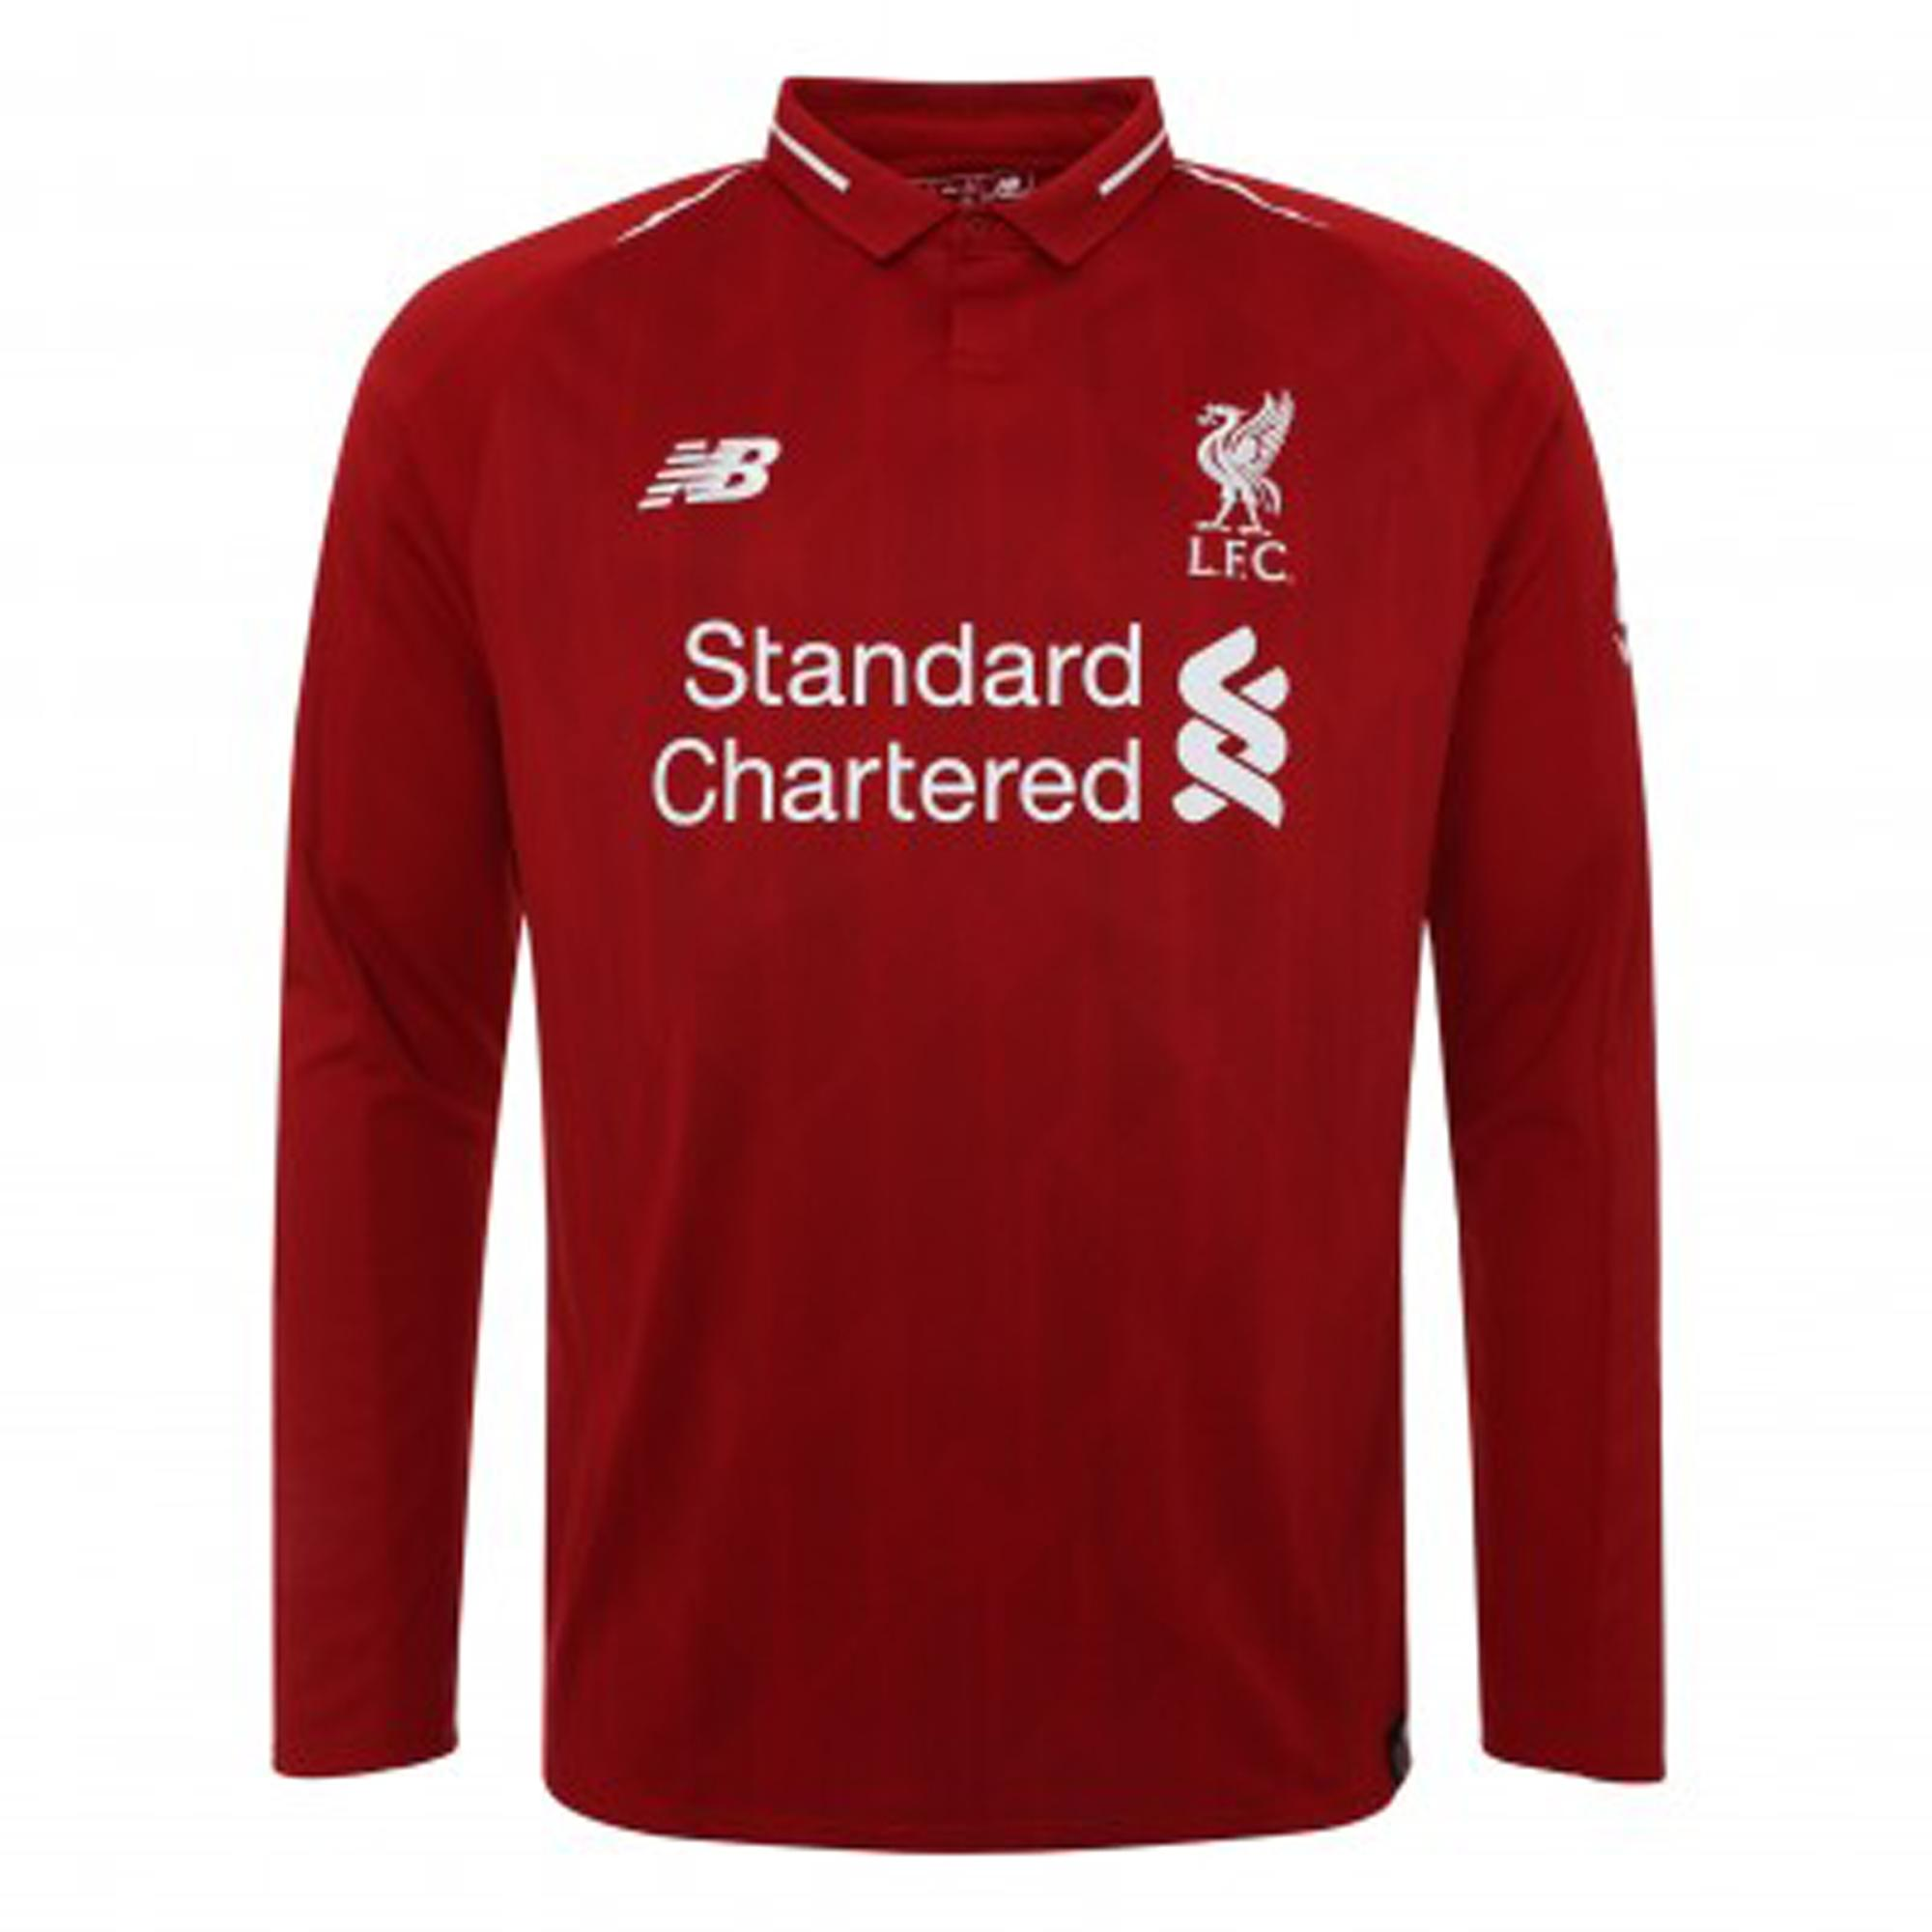 info for 9be7e a1488 Liverpool 2018/19 Home Jersey - Long Sleeve